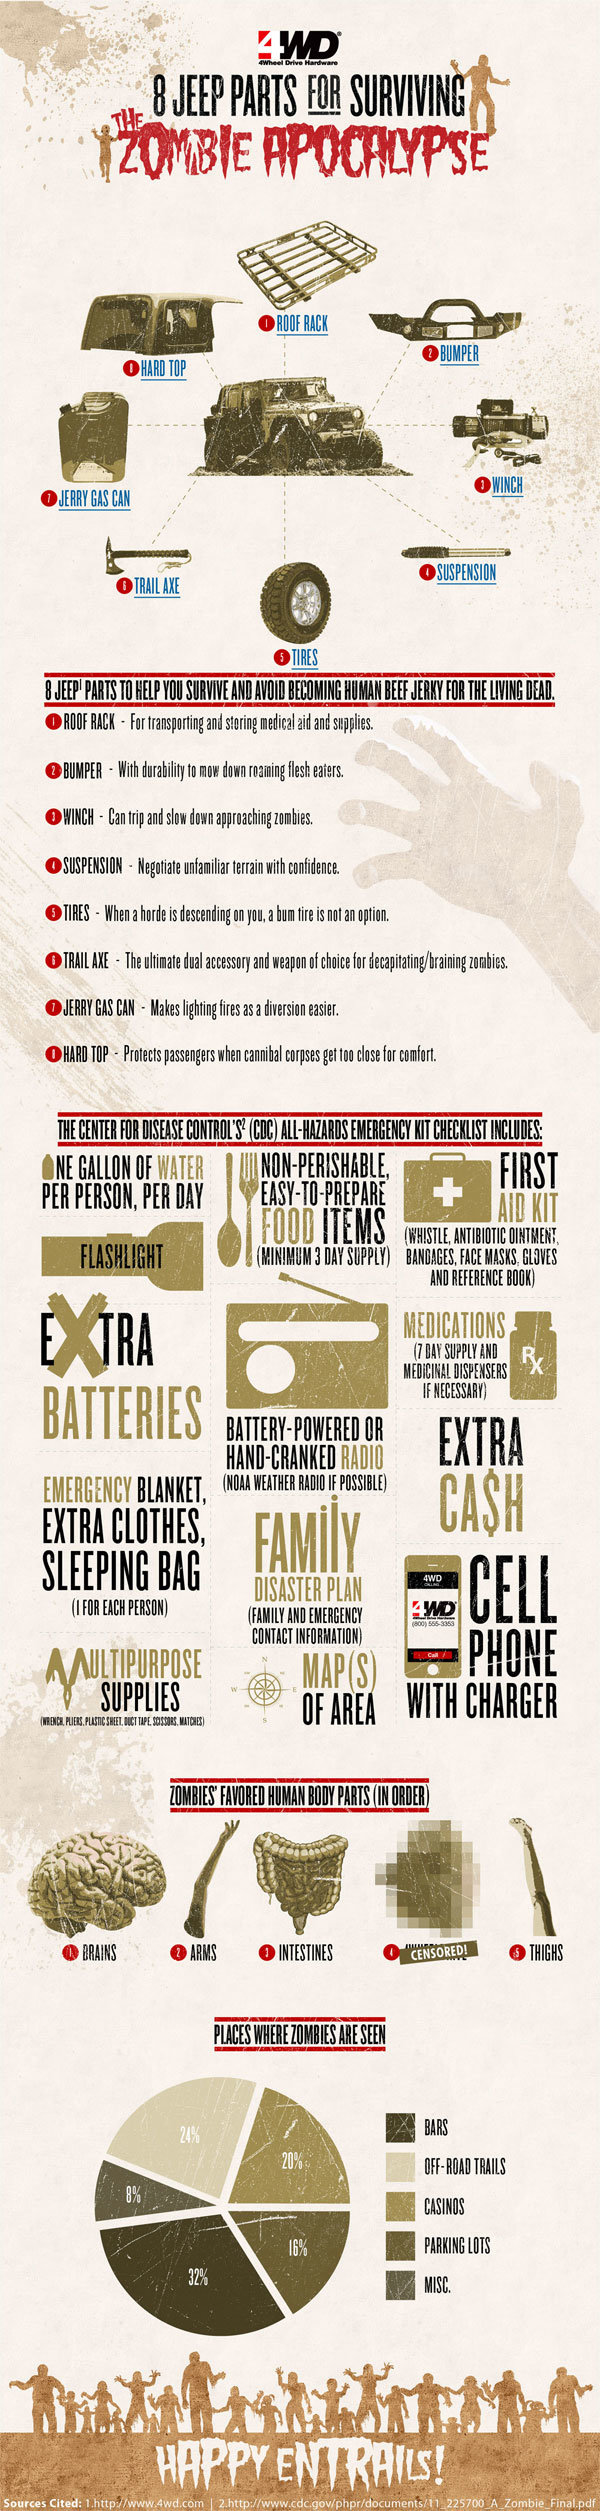 8 jeep parts for surviving the zombie apocalypse #infographic